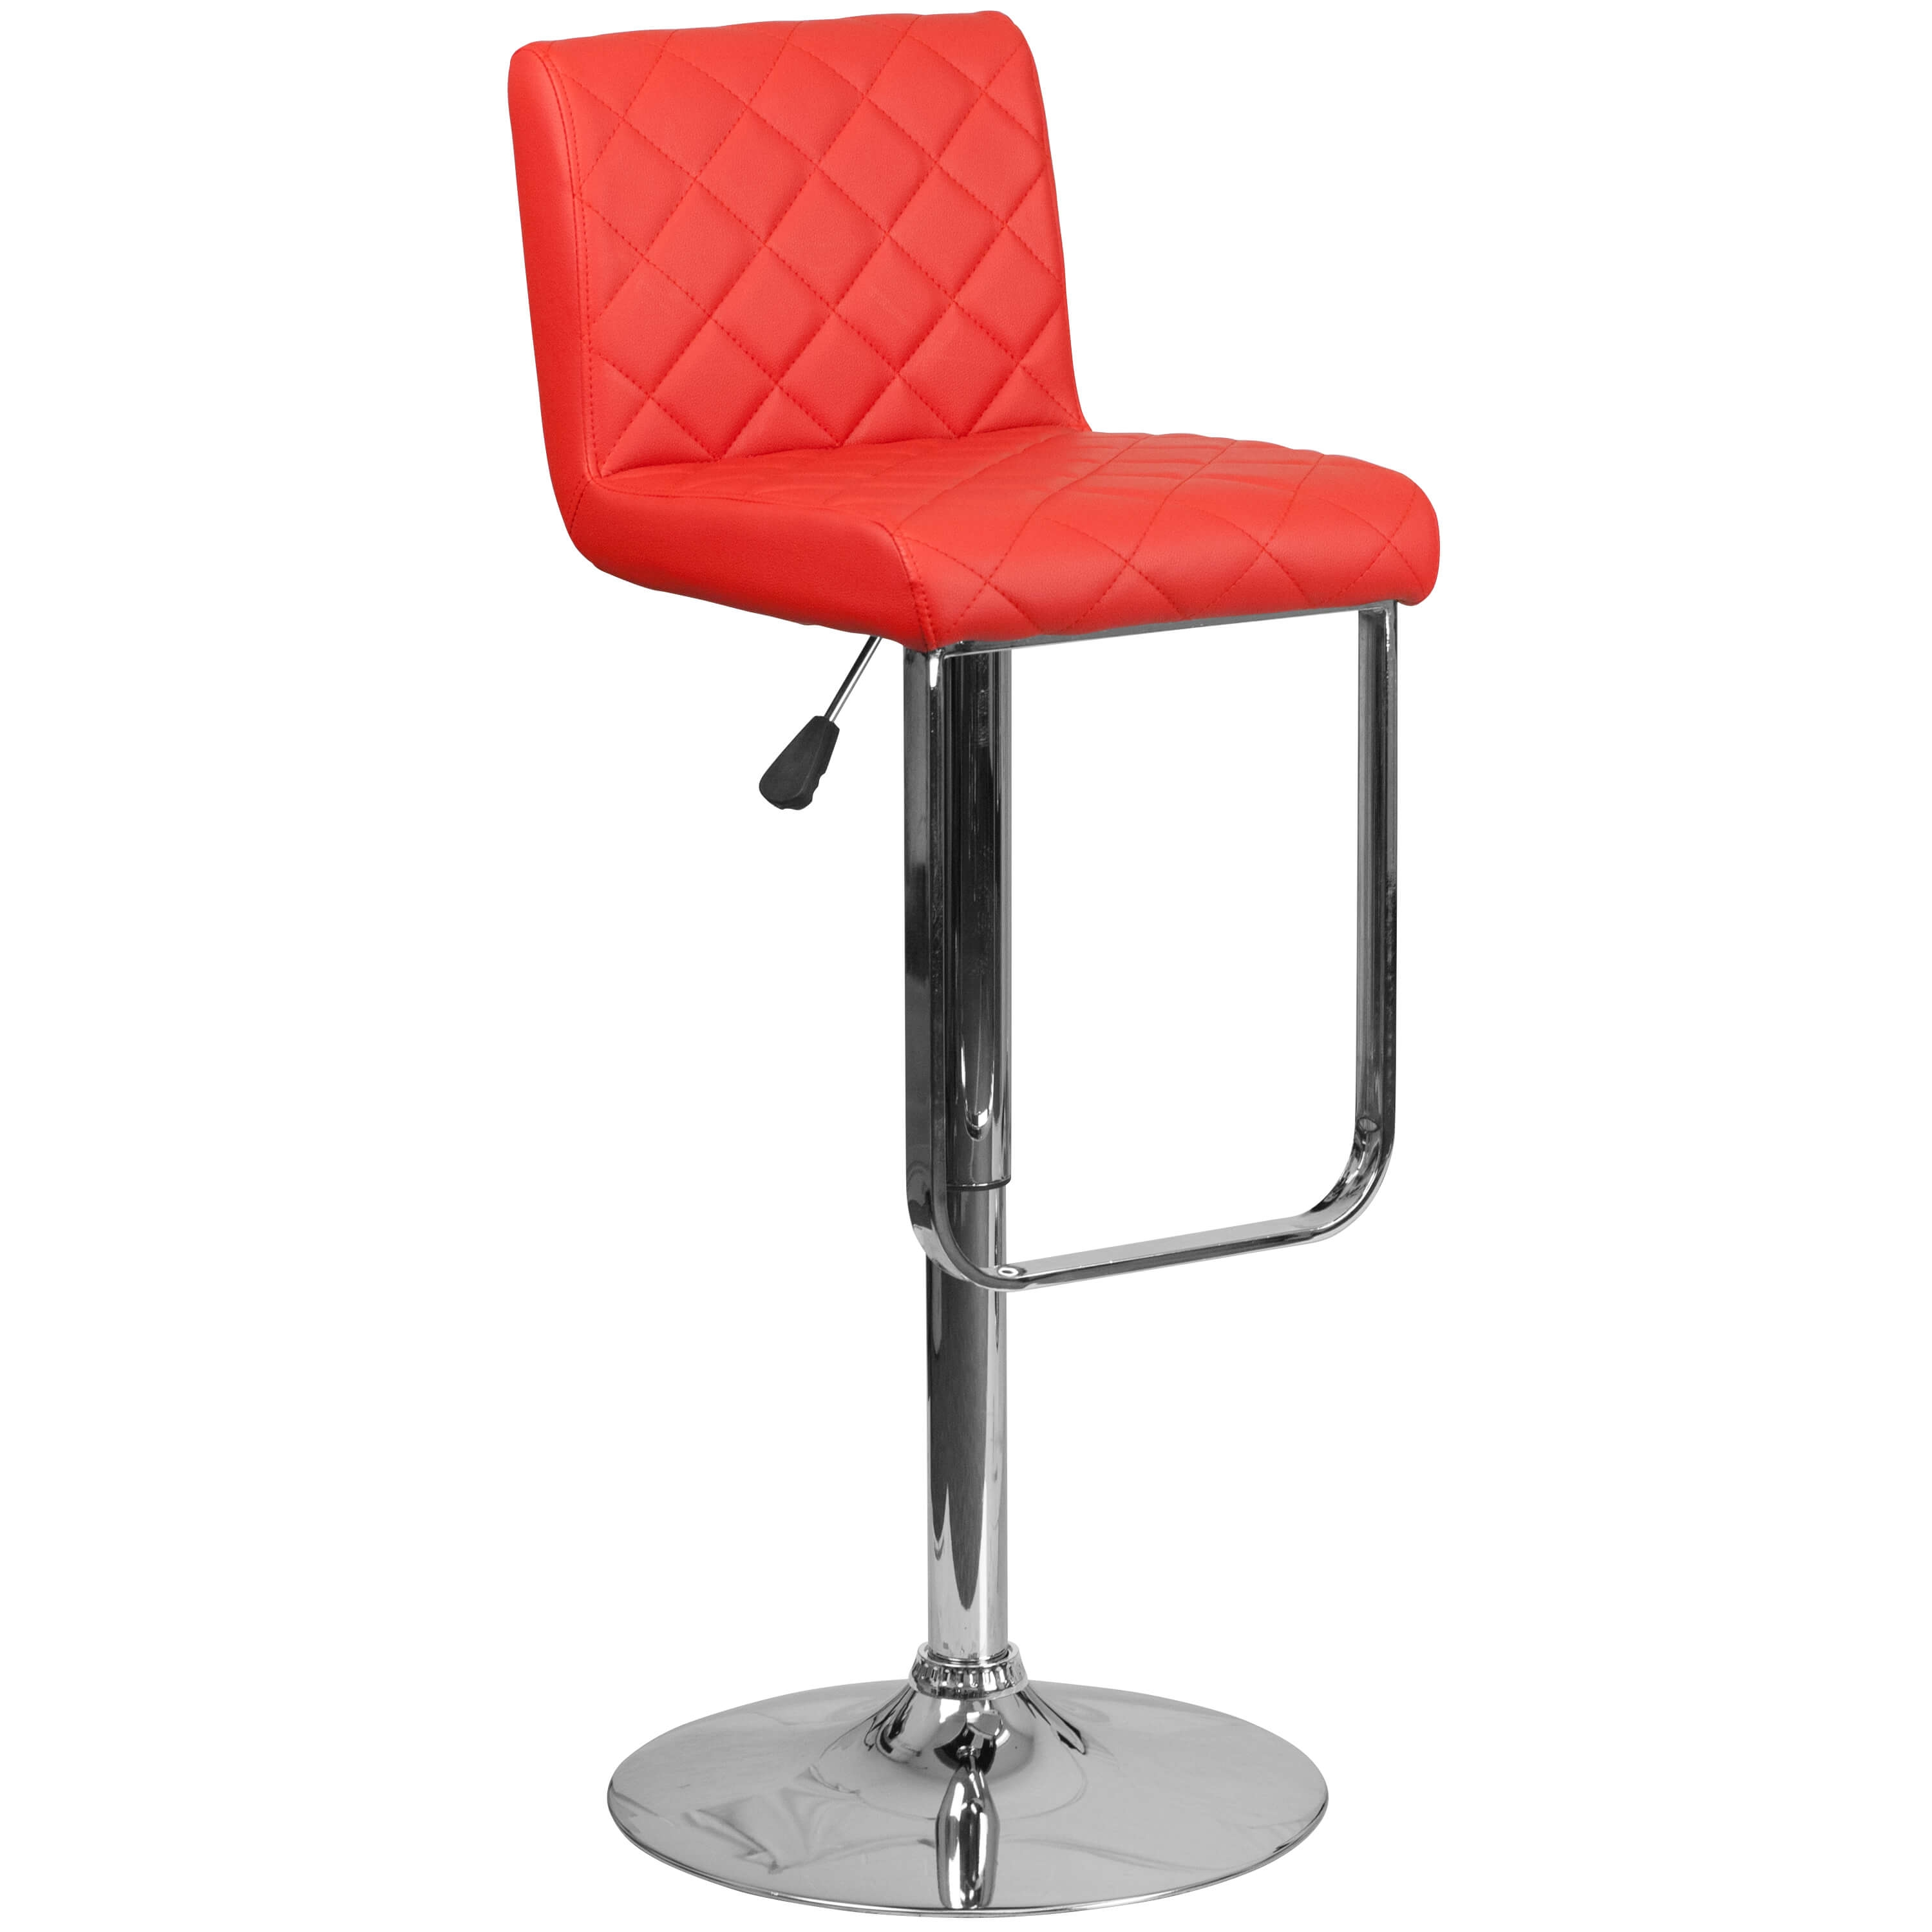 Cafe chairs CUB DS 8101 RED GG FLA